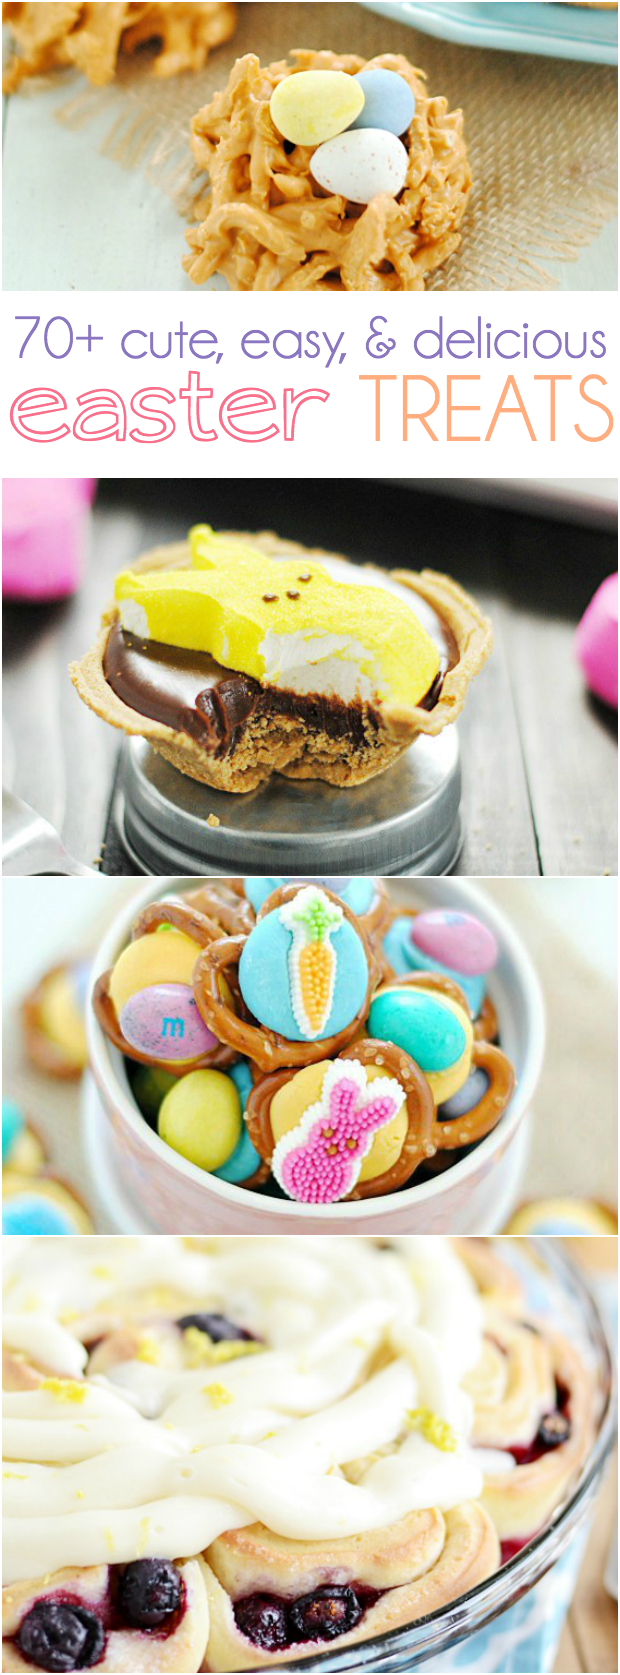 70+ Easter Treats including pretzel bites, s'mores pies, and carrot cupcakes!